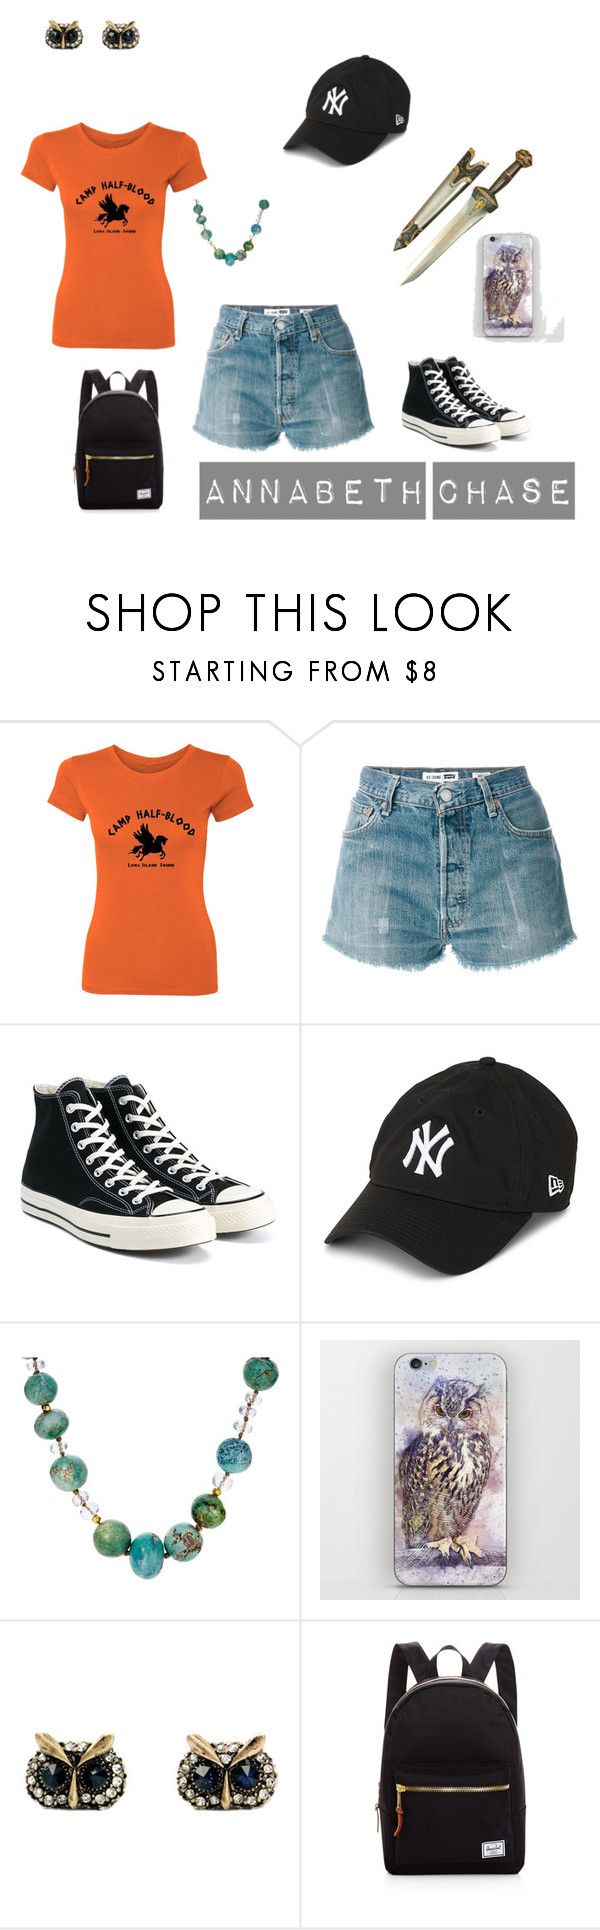 """""""Annabeth Chase"""" by louisahammond ❤ liked on Polyvore featuring RE/DONE, Converse, New Era, Lena Skadegard and Herschel Supply Co."""